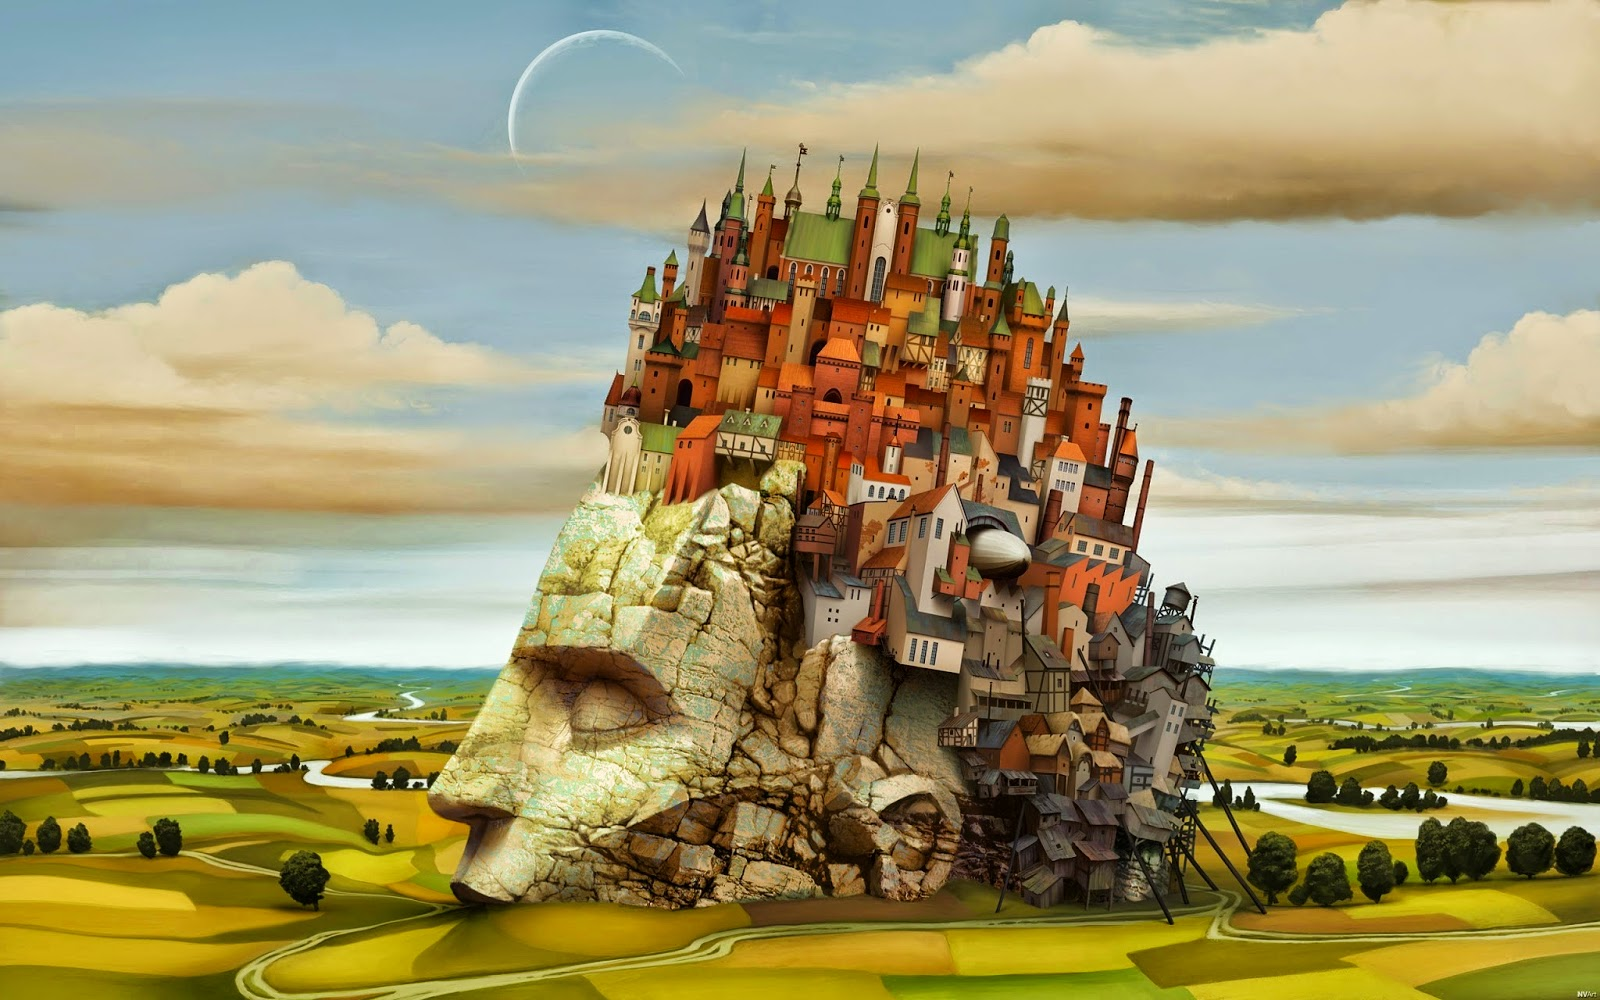 stone head with colorful city on top (art)